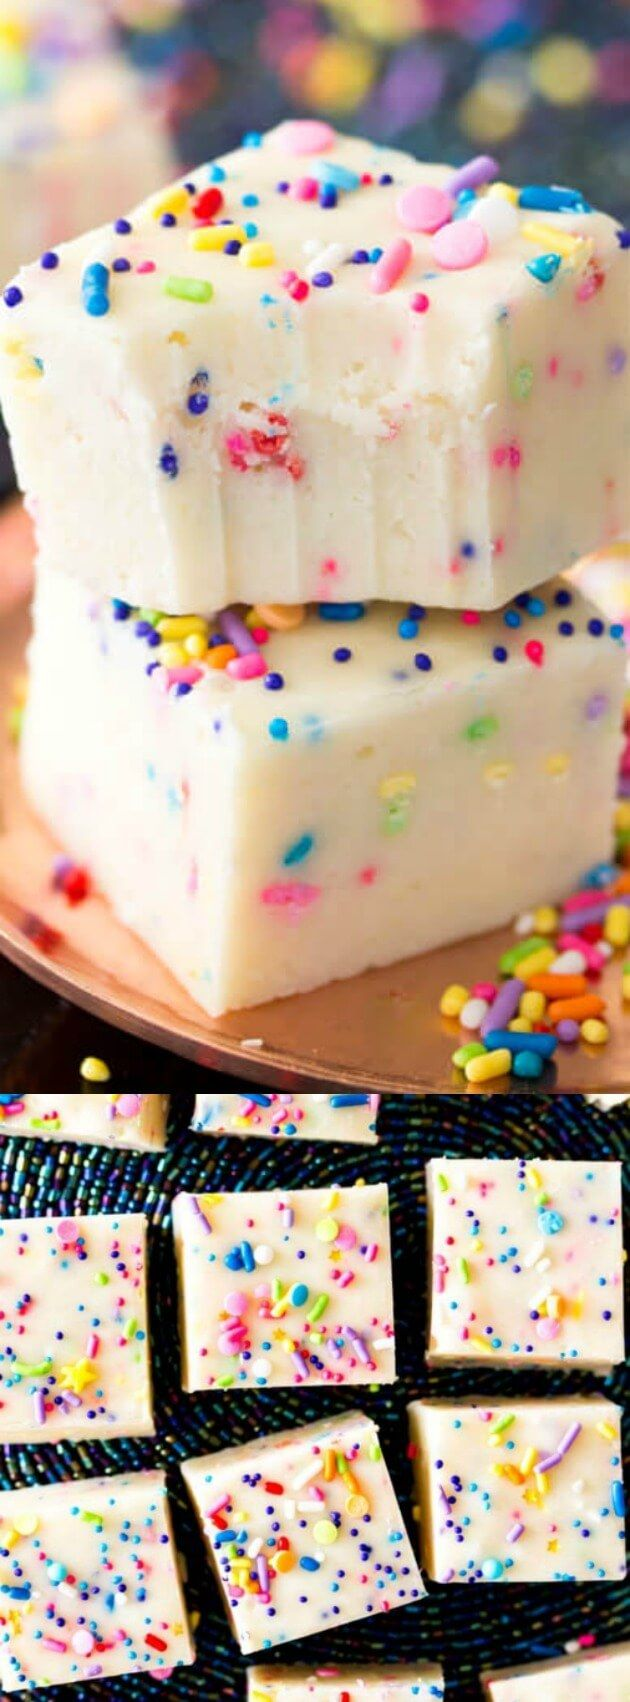 This Cake Batter Fudge Is A Fun And Colorful Birthday Treat The Sweet Funfetti Made With Mix Full Of Sprinkles Via